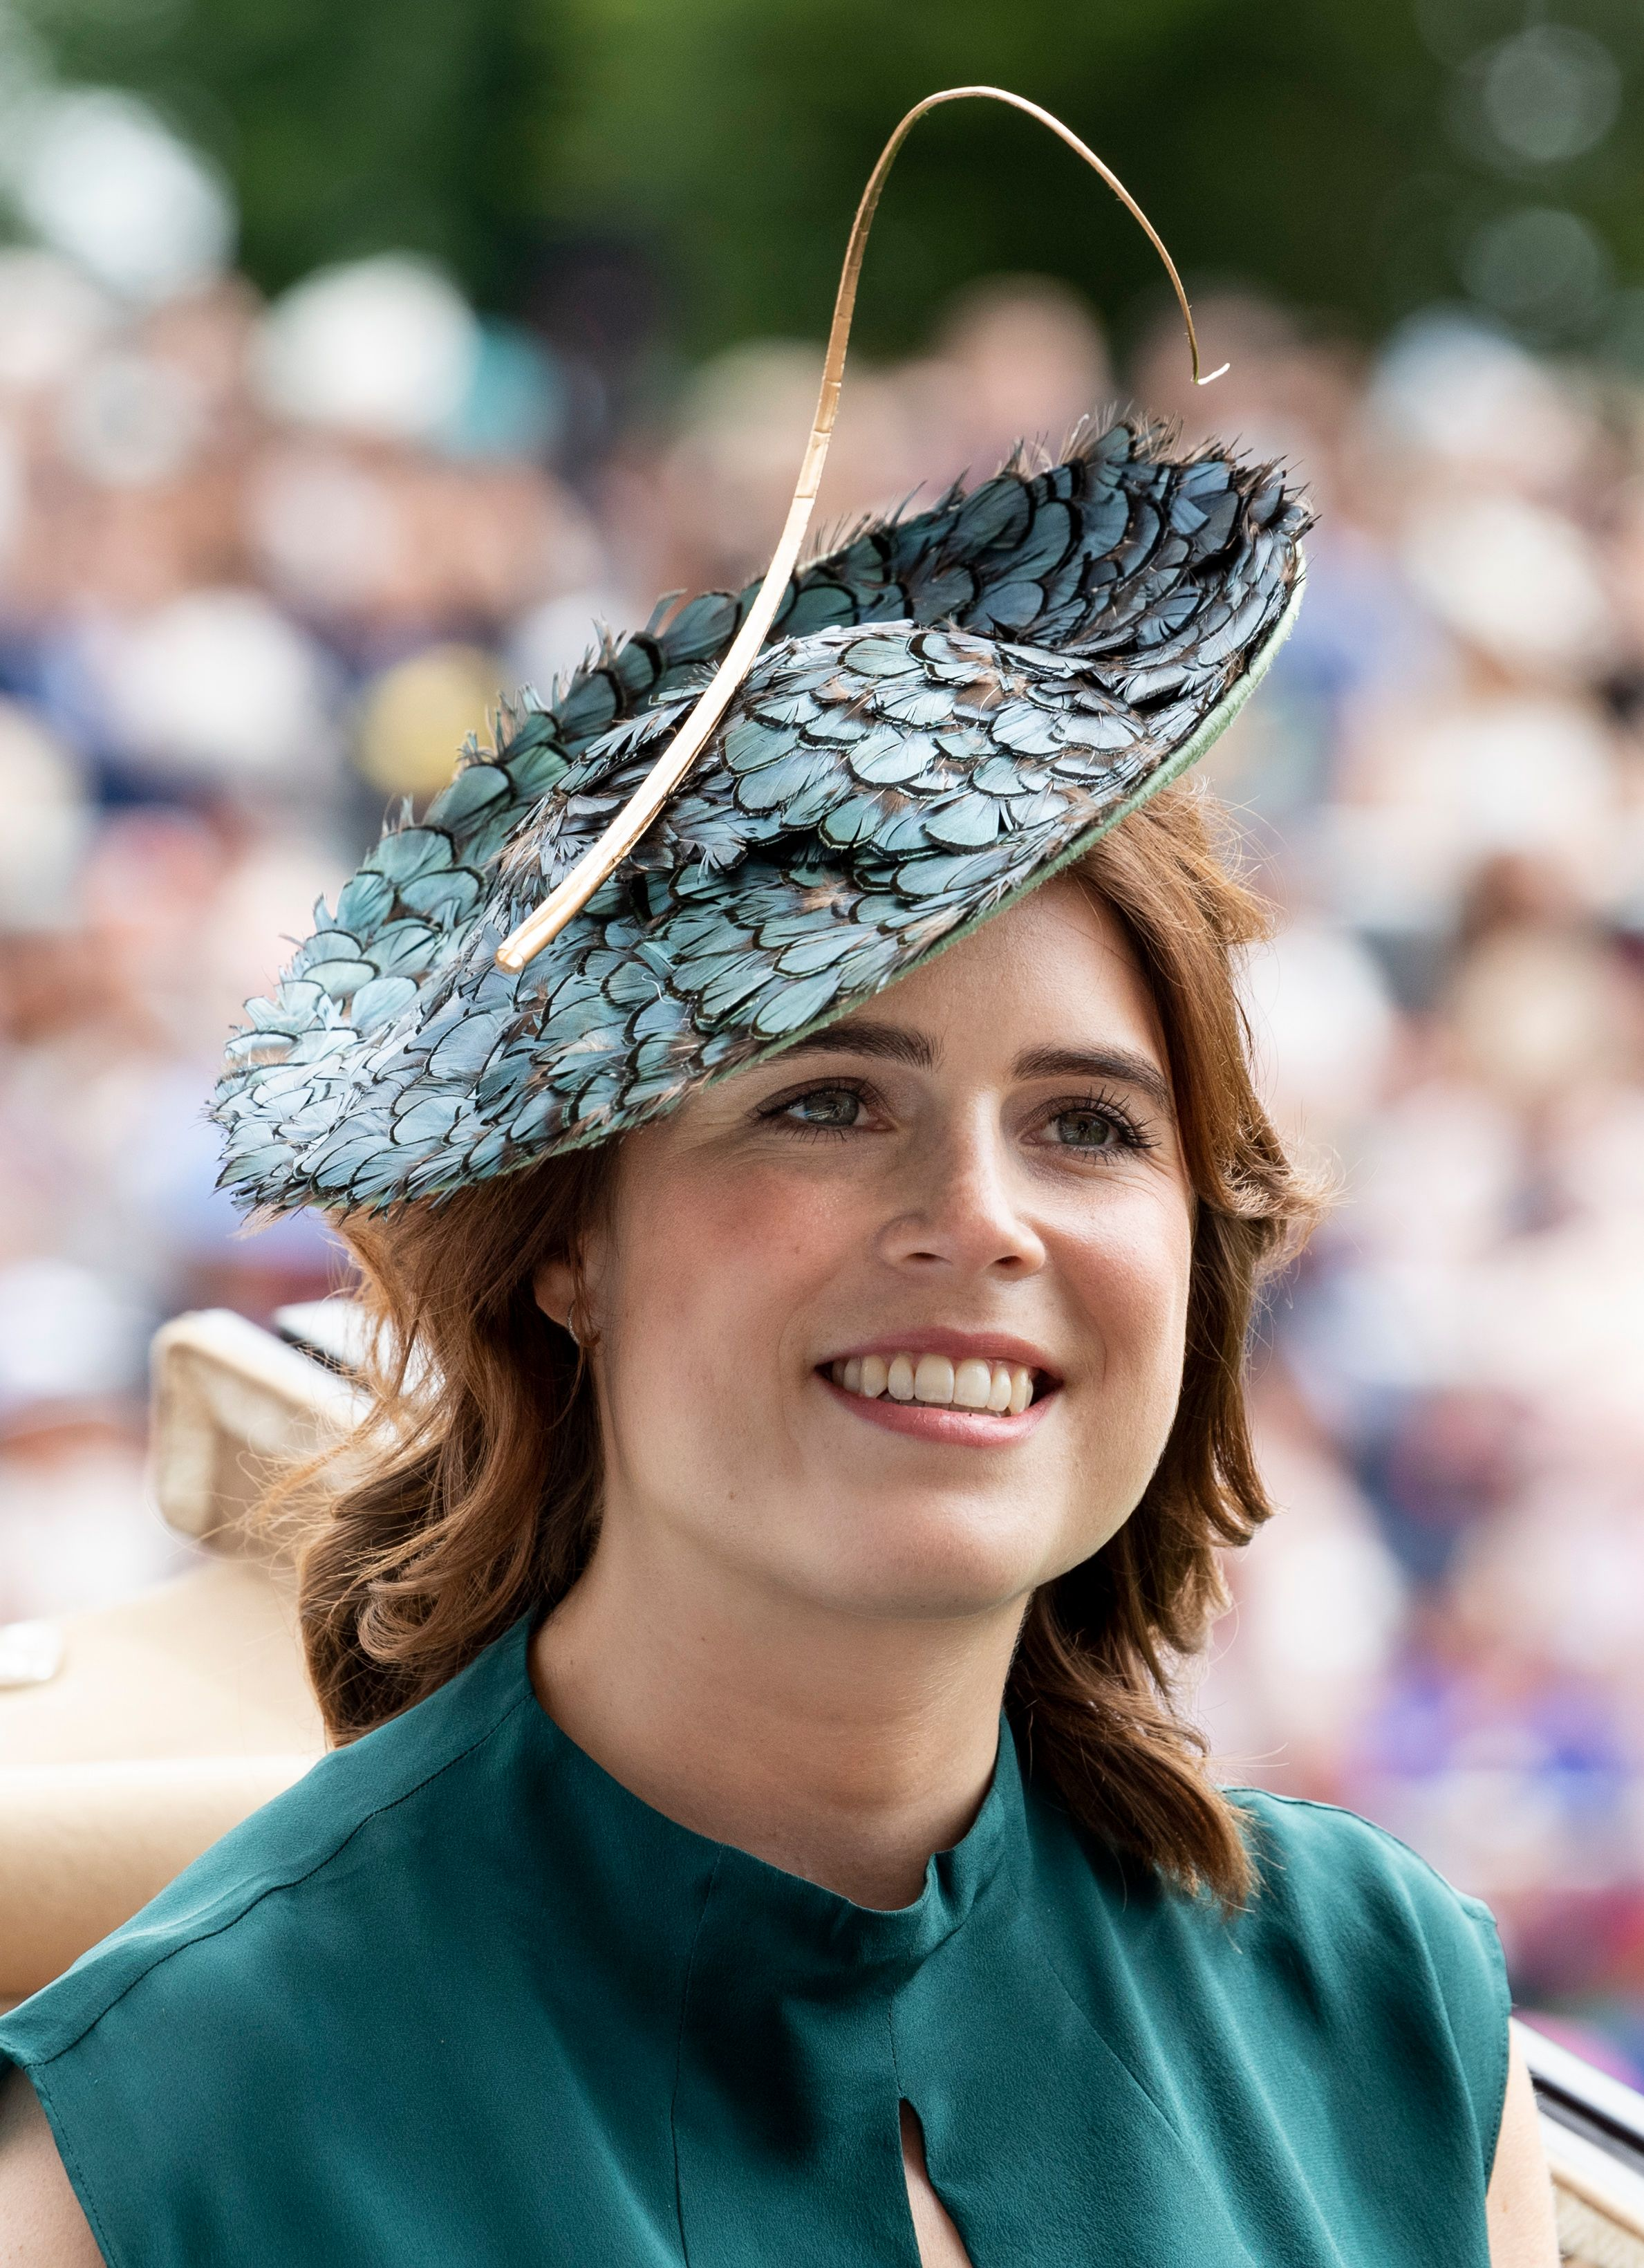 Princess Eugenie on day three, Ladies Day, of Royal Ascot at Ascot Racecourse on June 20, 2019 in Ascot, England | Photo: Getty Images